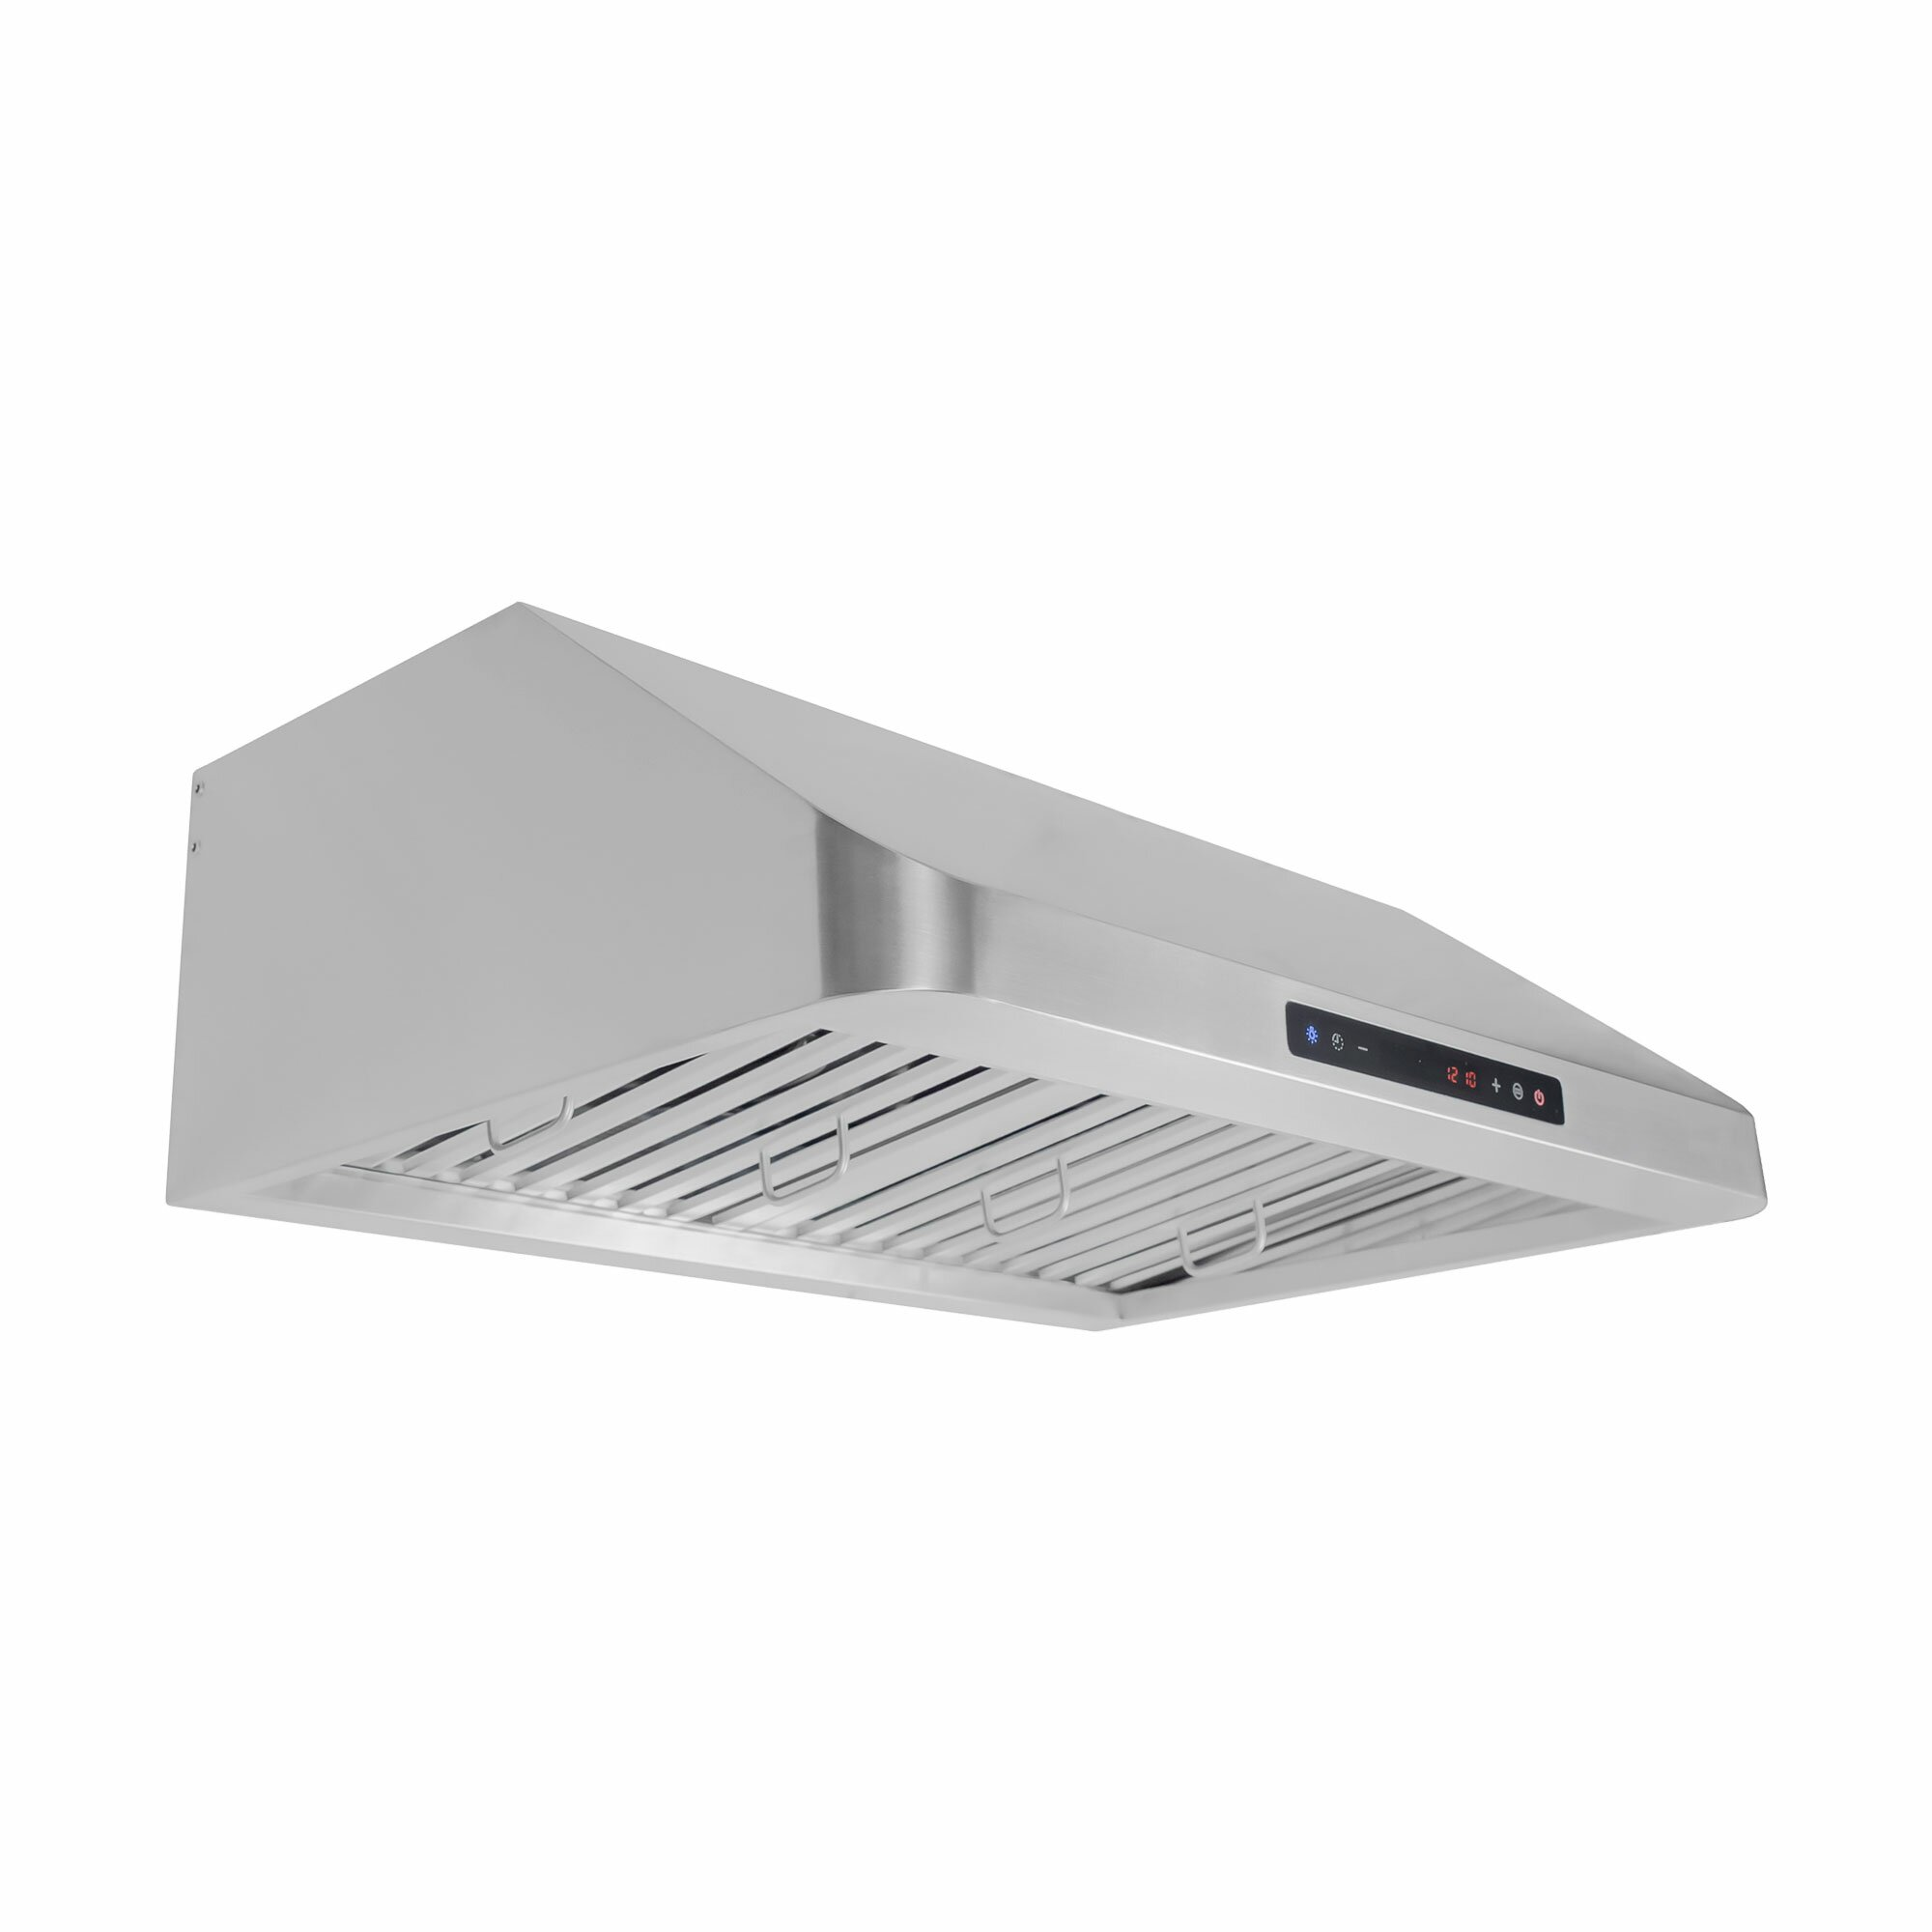 cosmo 30 900 cfm under cabinet range hood reviews wayfair. Black Bedroom Furniture Sets. Home Design Ideas